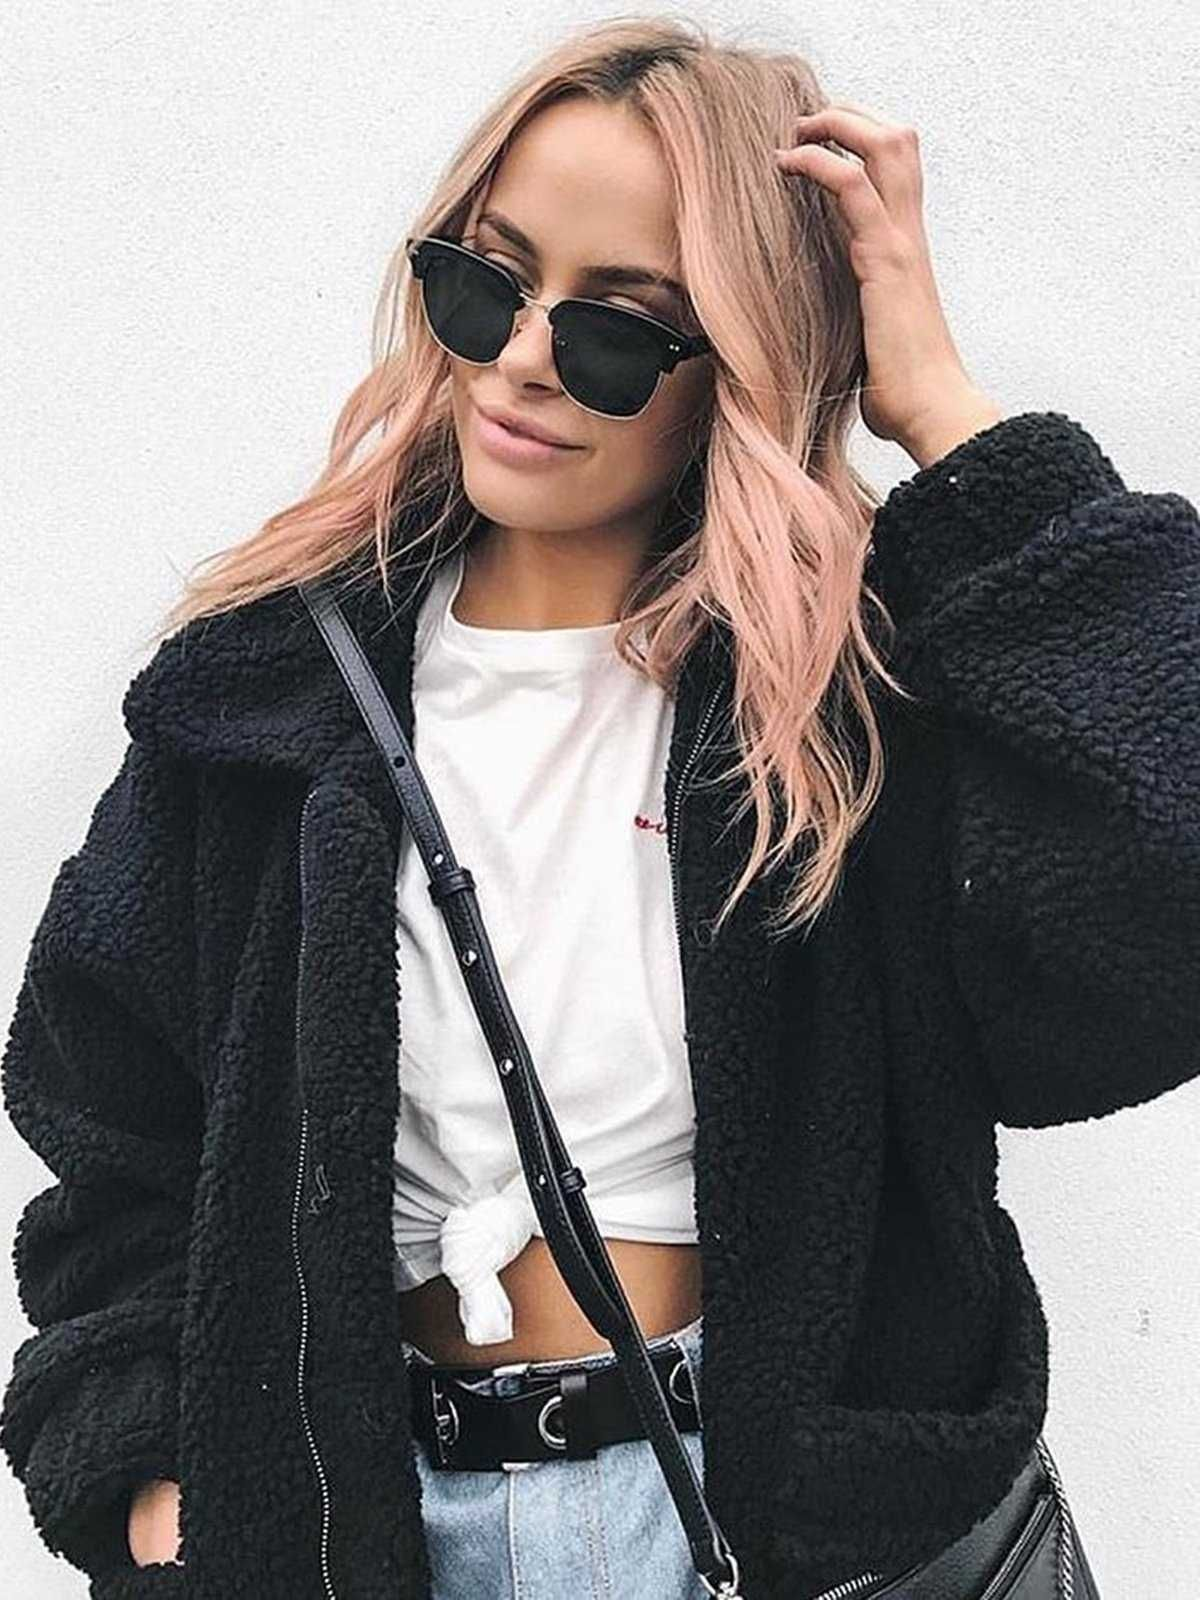 443edaf2b68eb oversized fur coat teddy bears fake fur jacket casual best winter jackets  for women 2018. Last 20 promotion code 15%OFF.Get ready for your fashion  fall ...